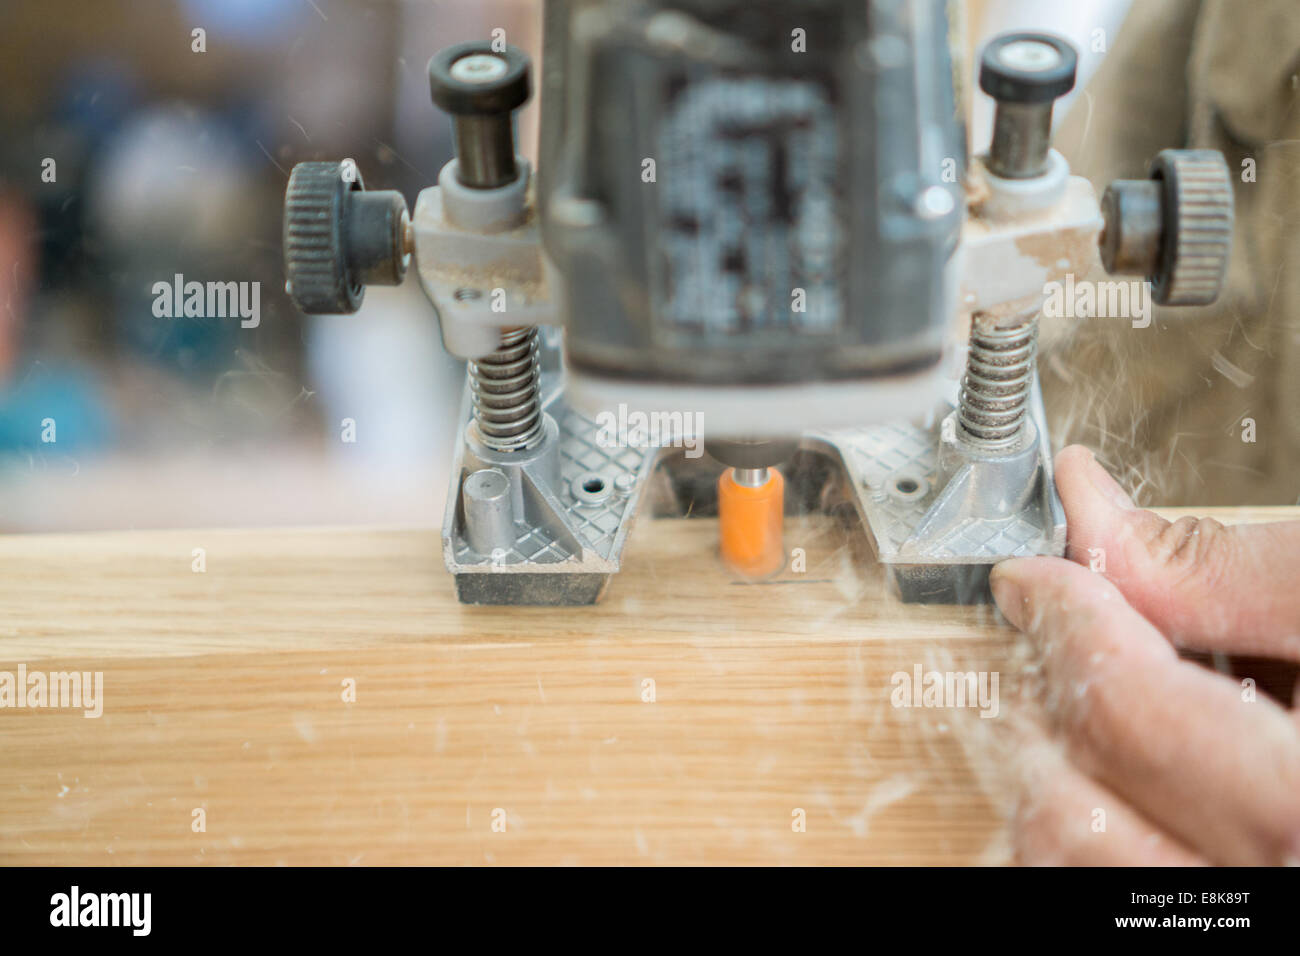 Blurred motion of carpenter working, preparing door for hinges - Stock Image